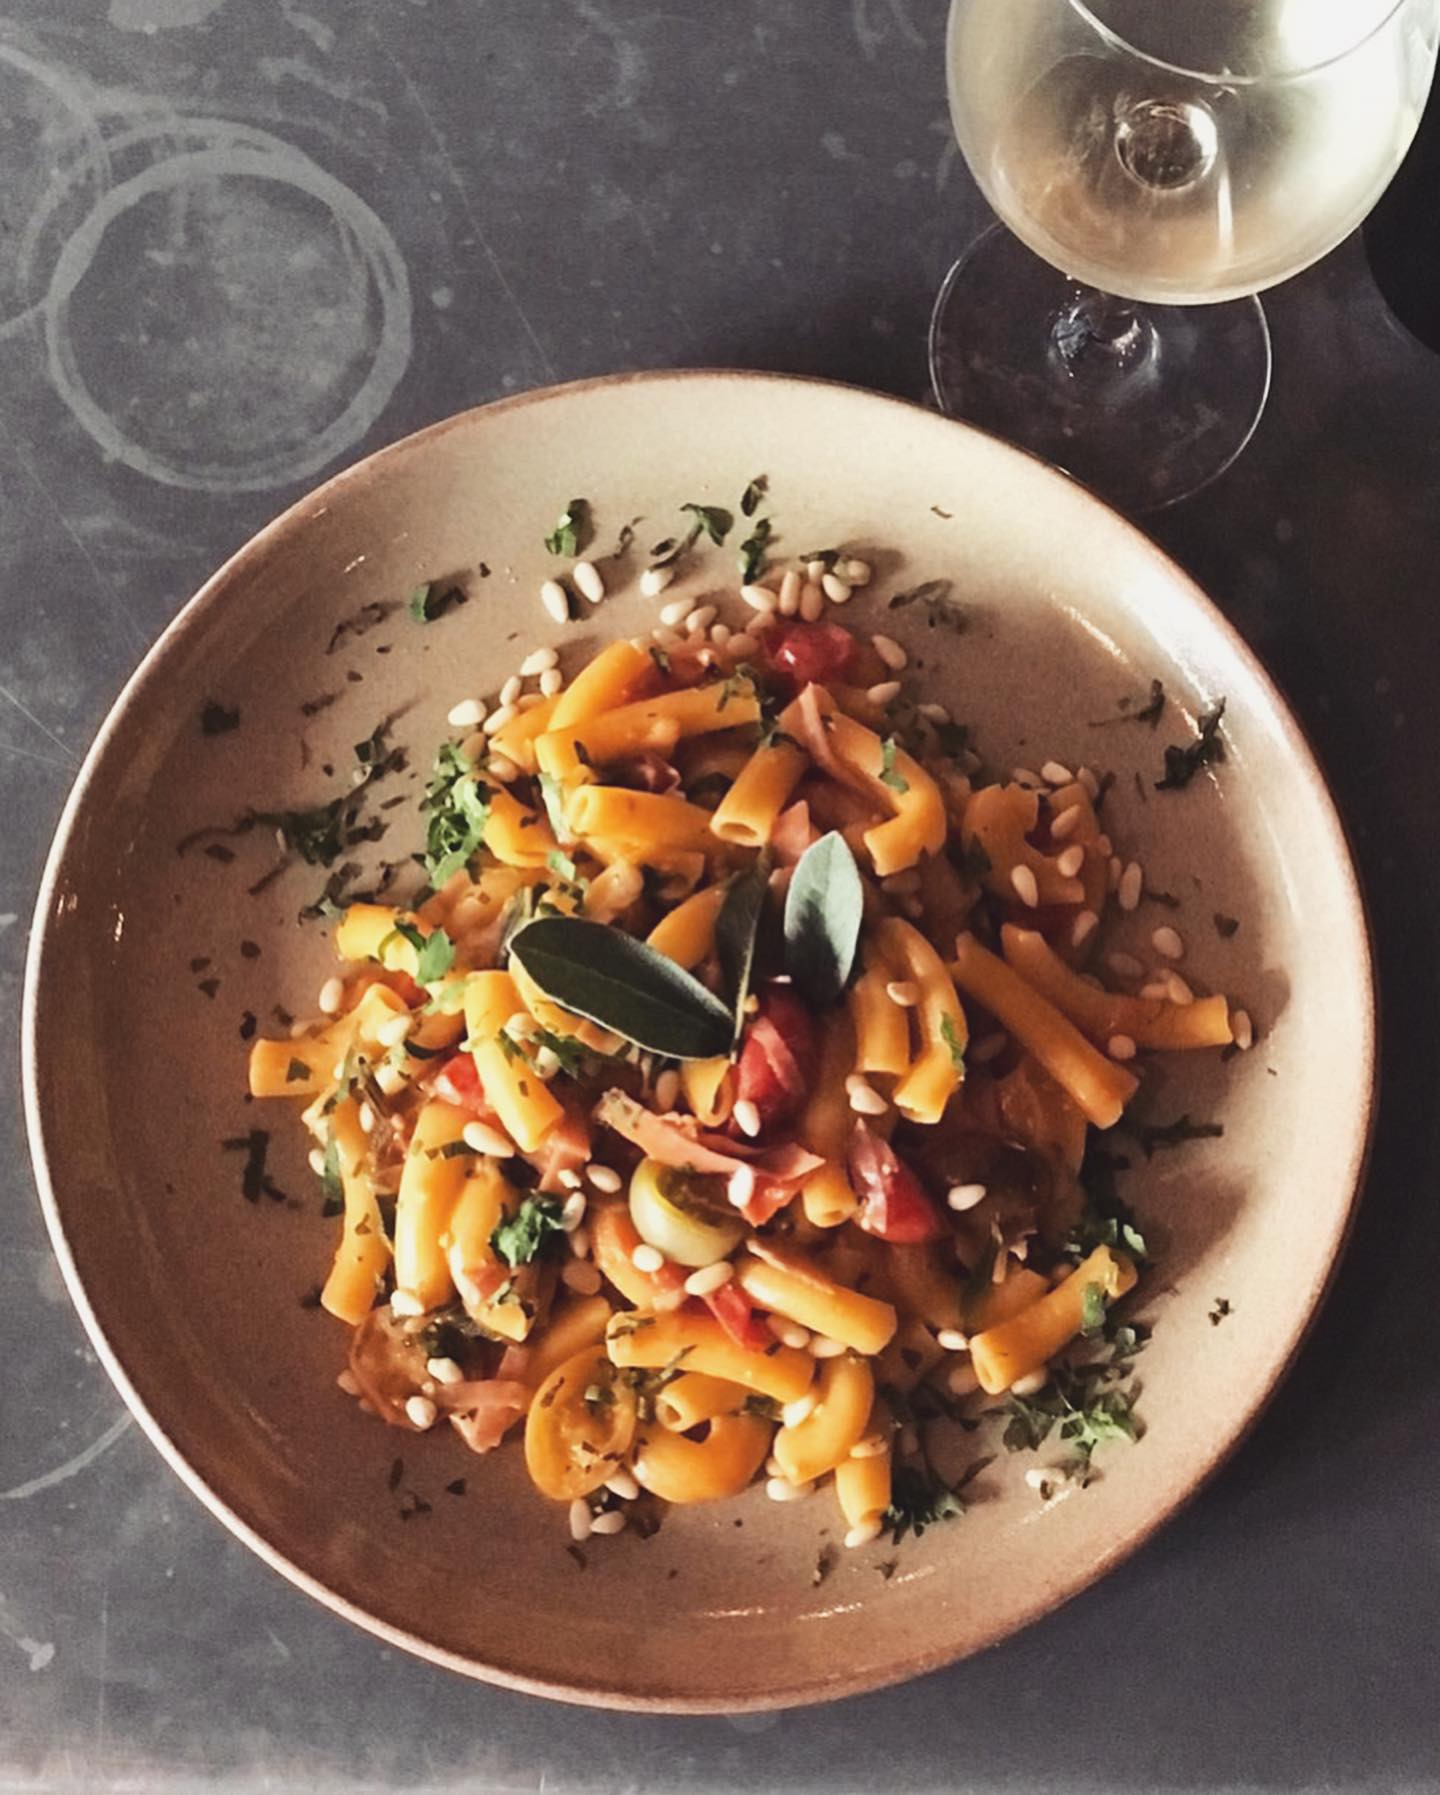 22-28 May - This week's pasta feature sees our saffron-infused homemade macaroni with speck, blistered sage, heirloom tomatoes and pine nuts.